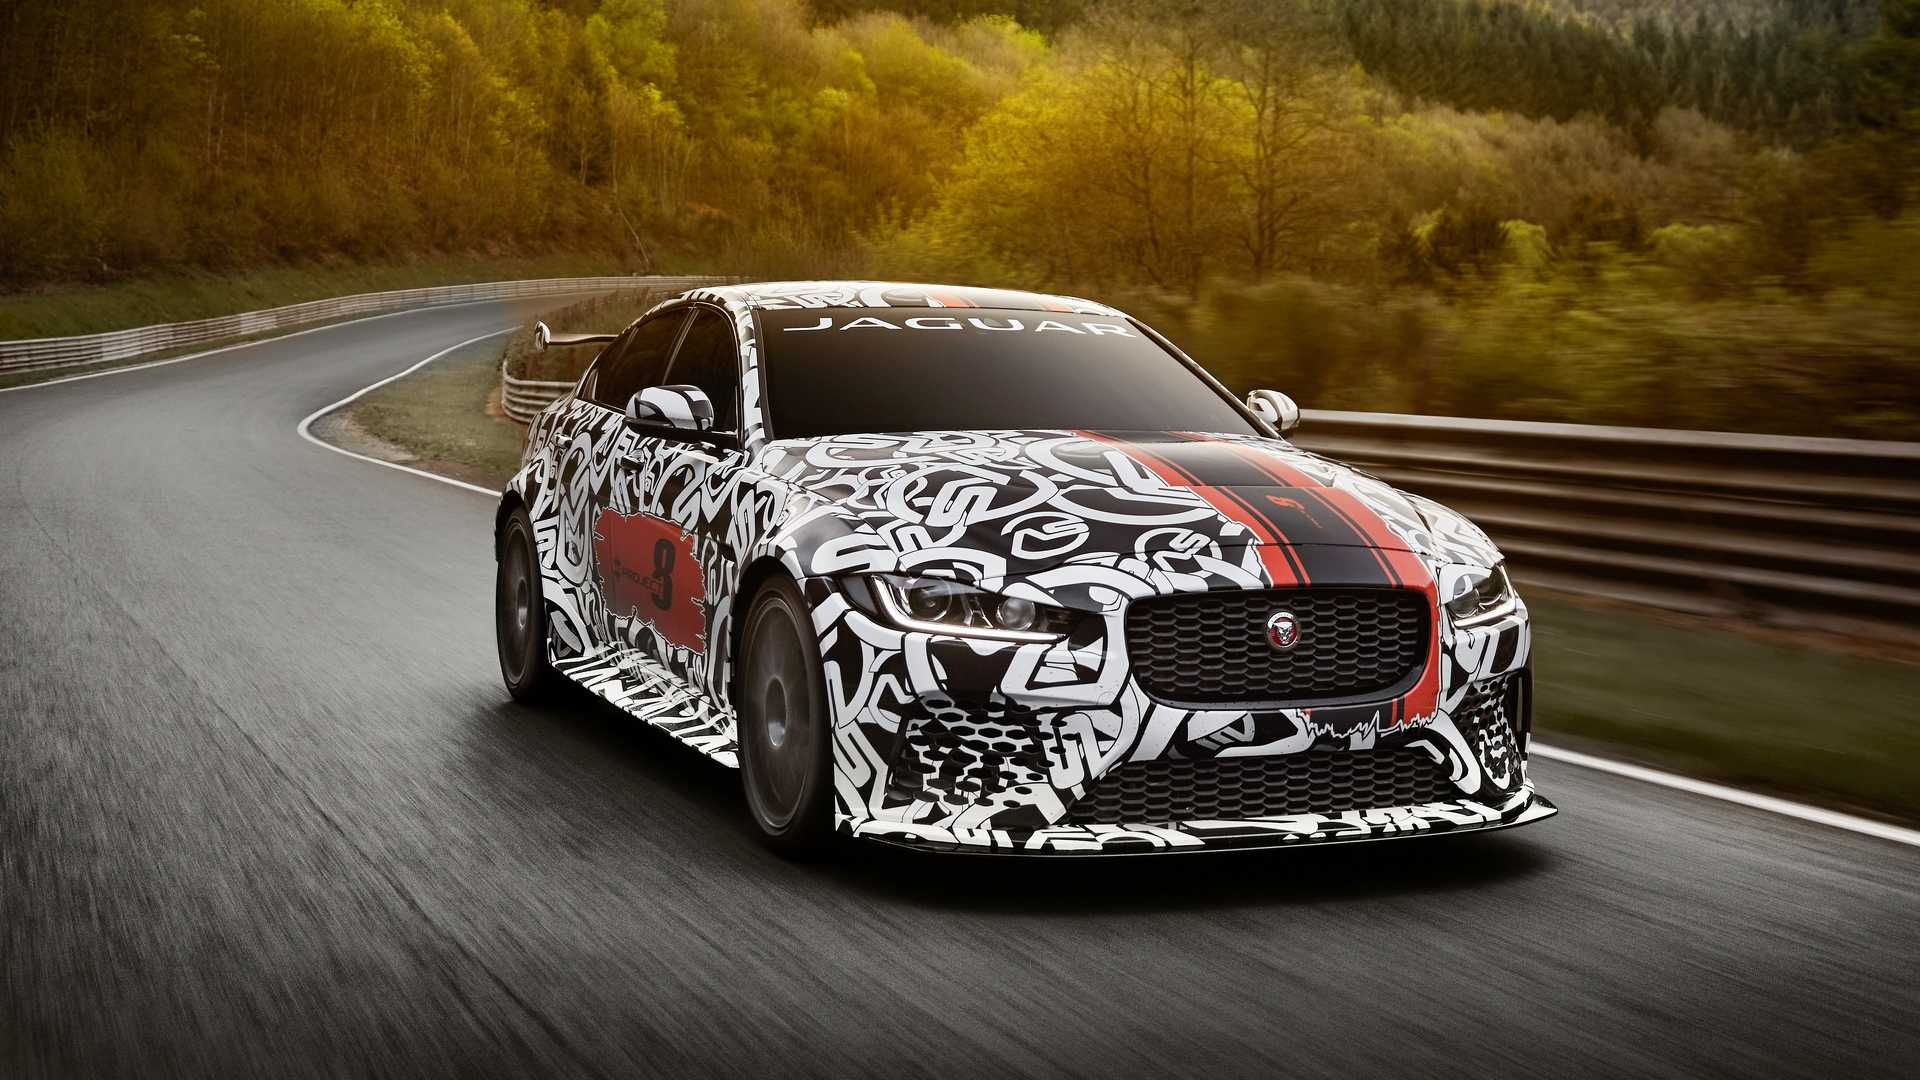 jaguar xe sv project 8 oficjalnie motofilm. Black Bedroom Furniture Sets. Home Design Ideas